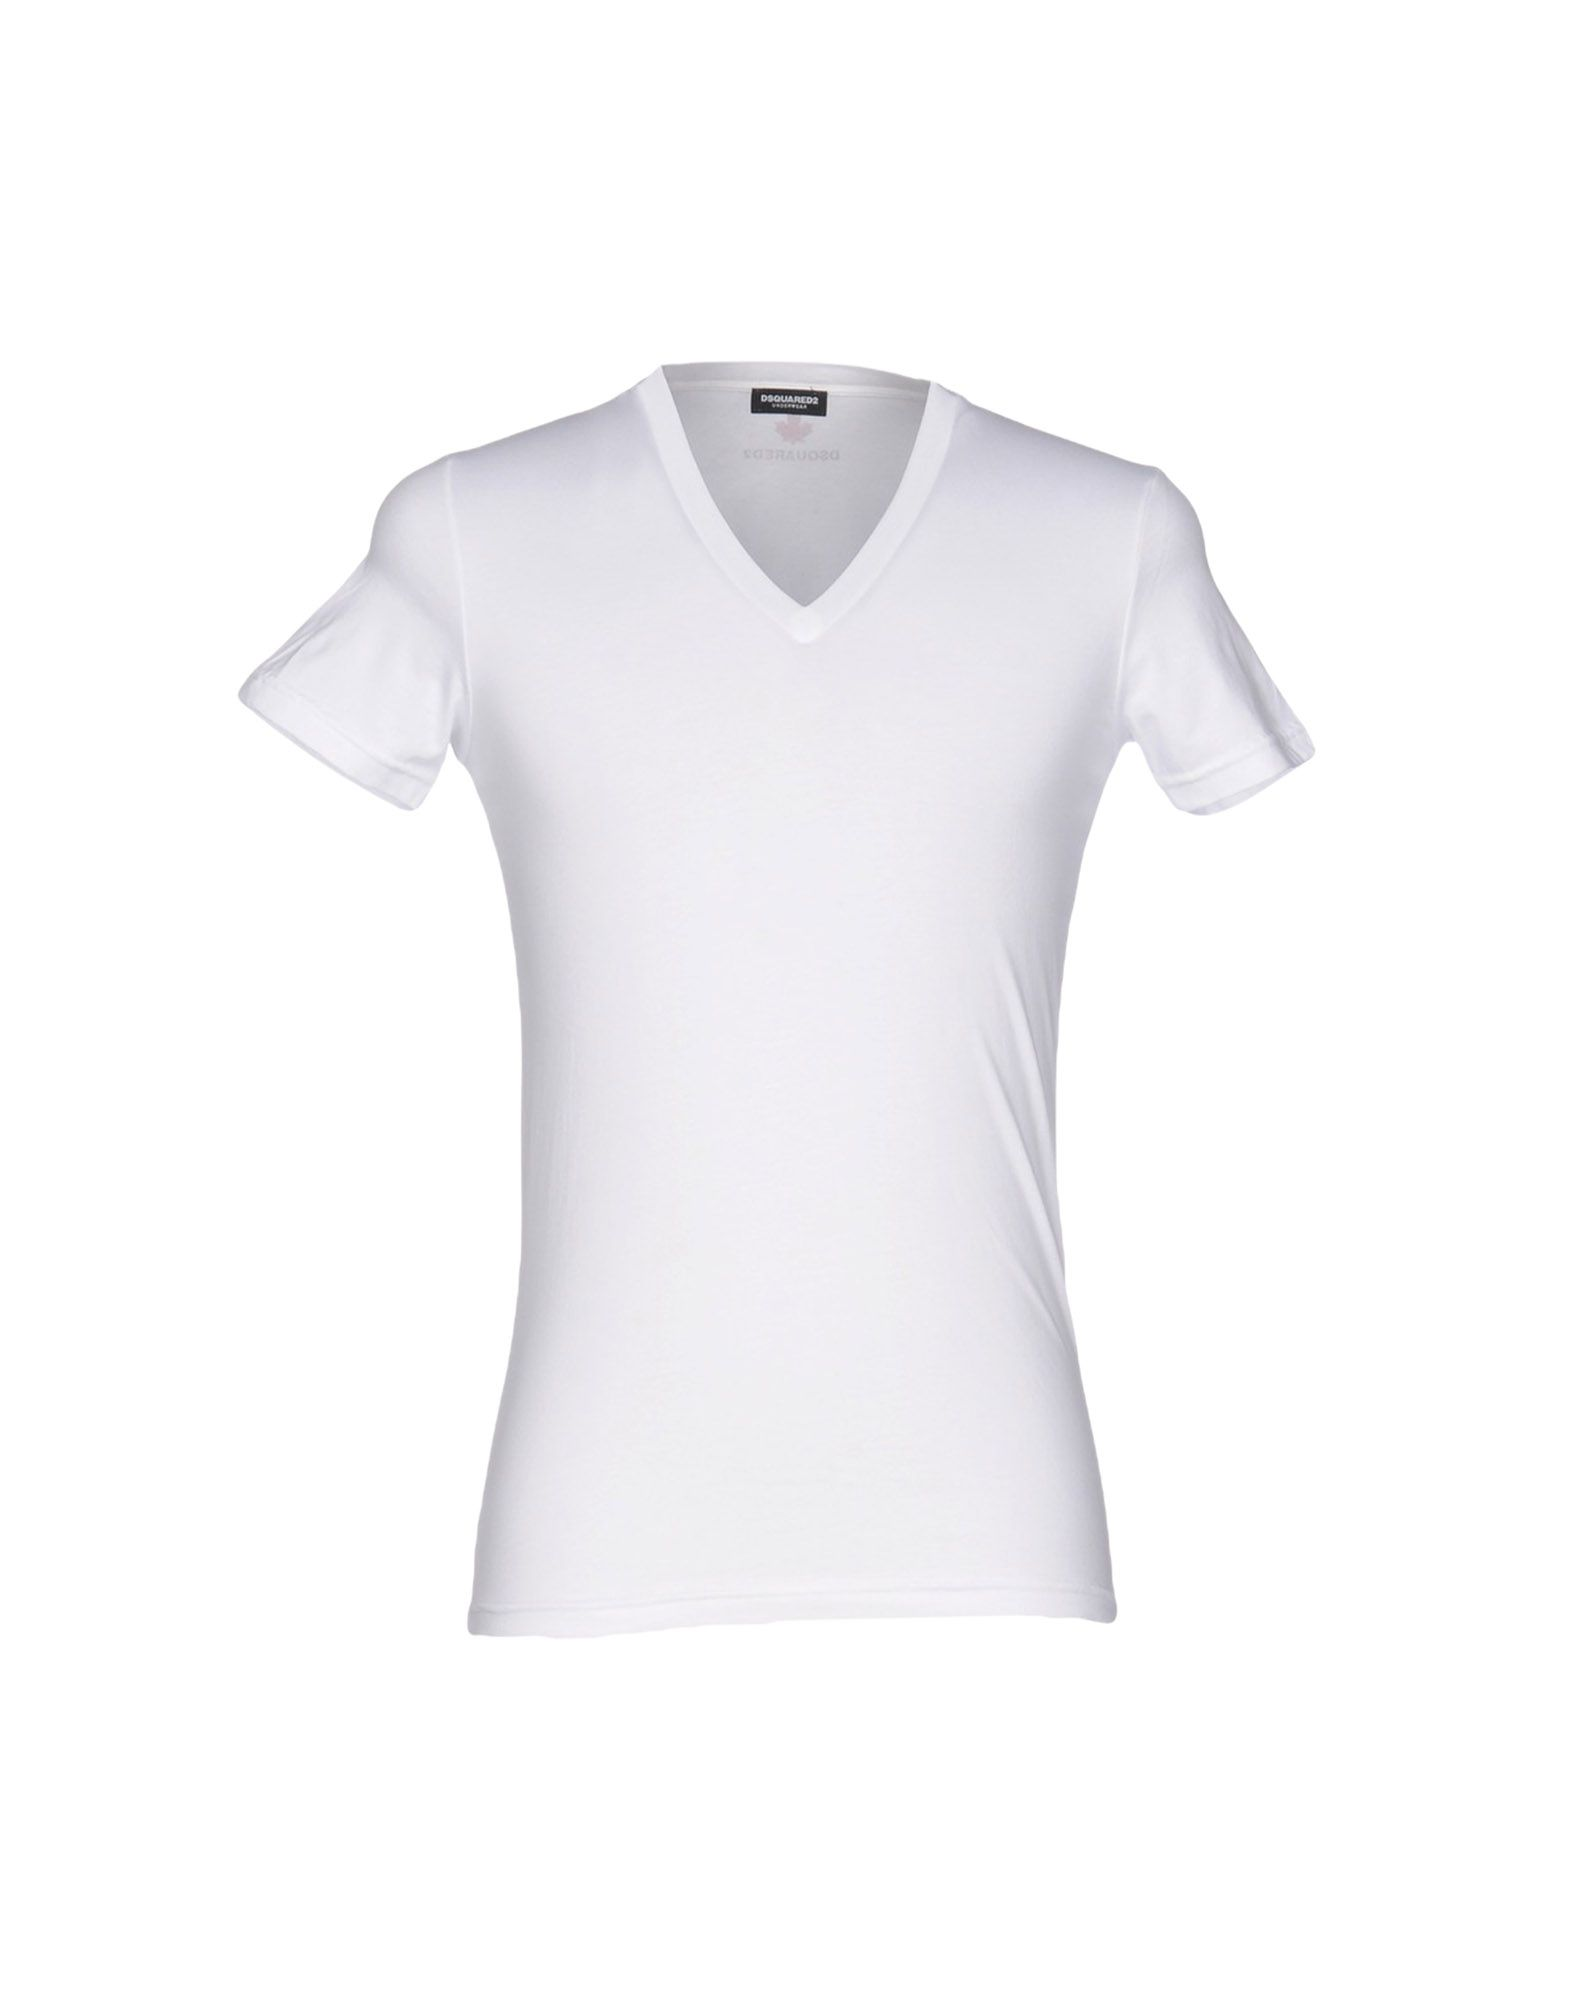 Tricot homme blanche